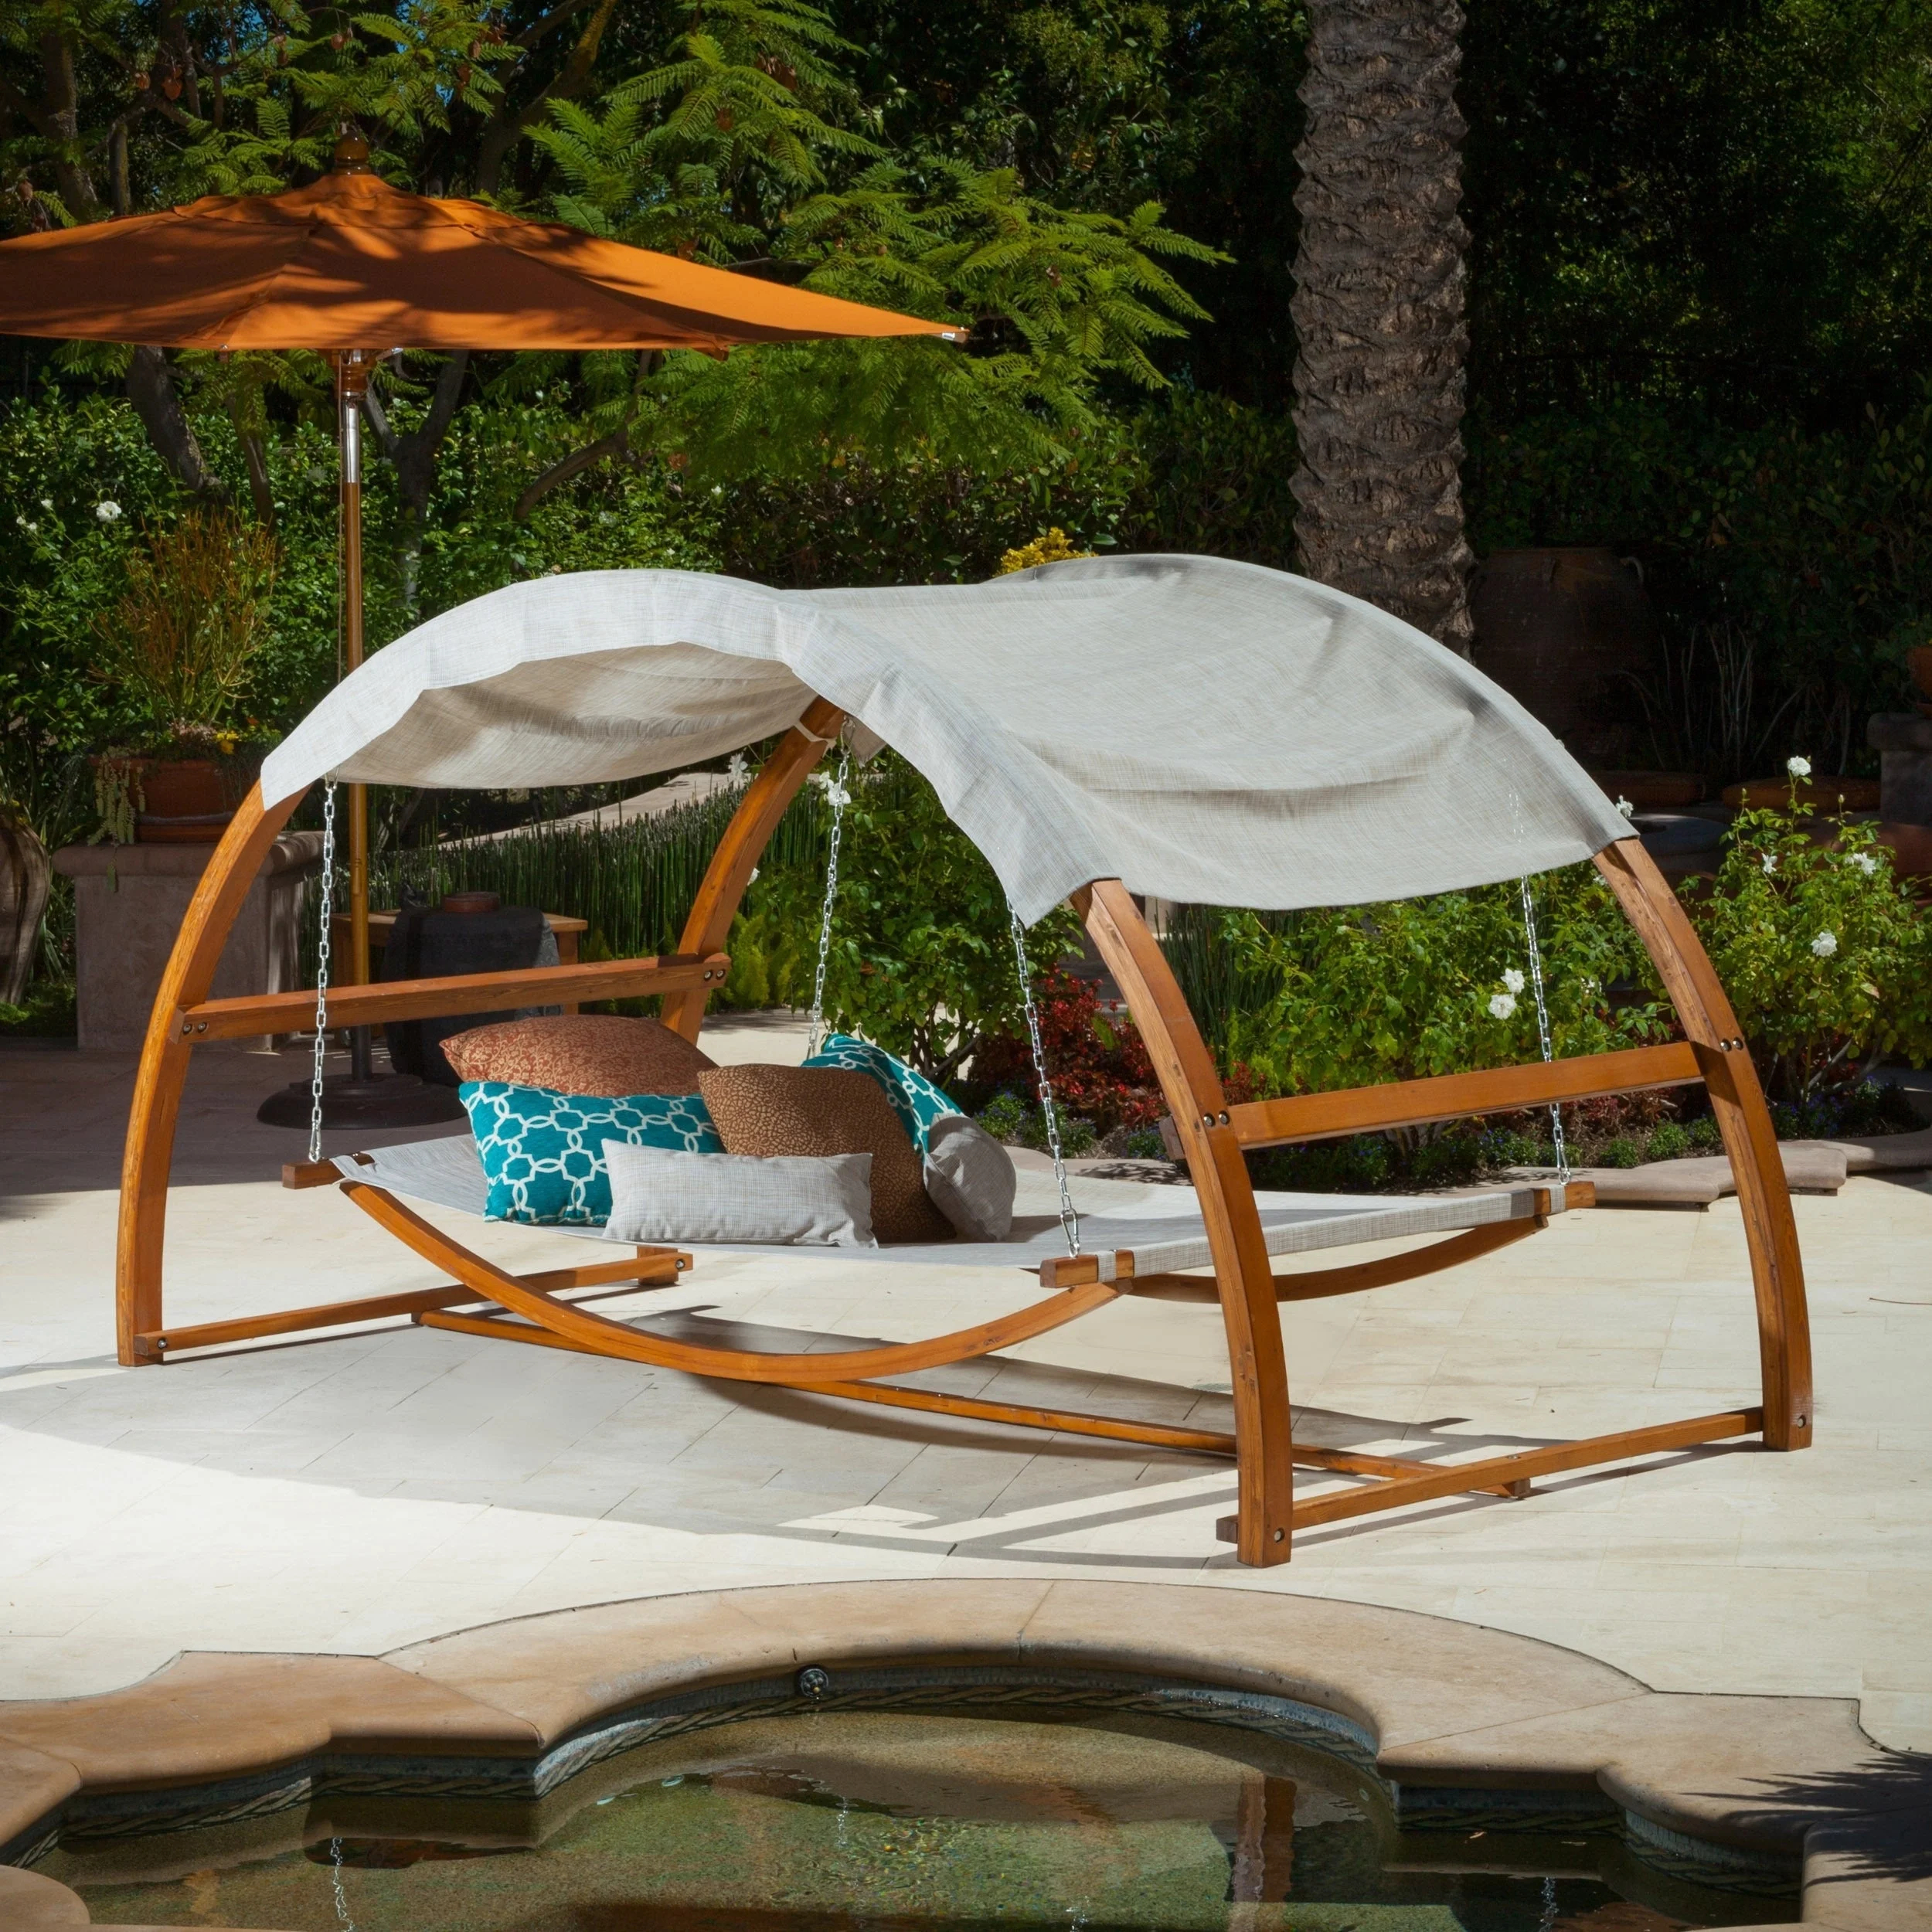 Outdoor Hanging Swing Bed For Porch, Deck, Or Yard With Overhead Canopy